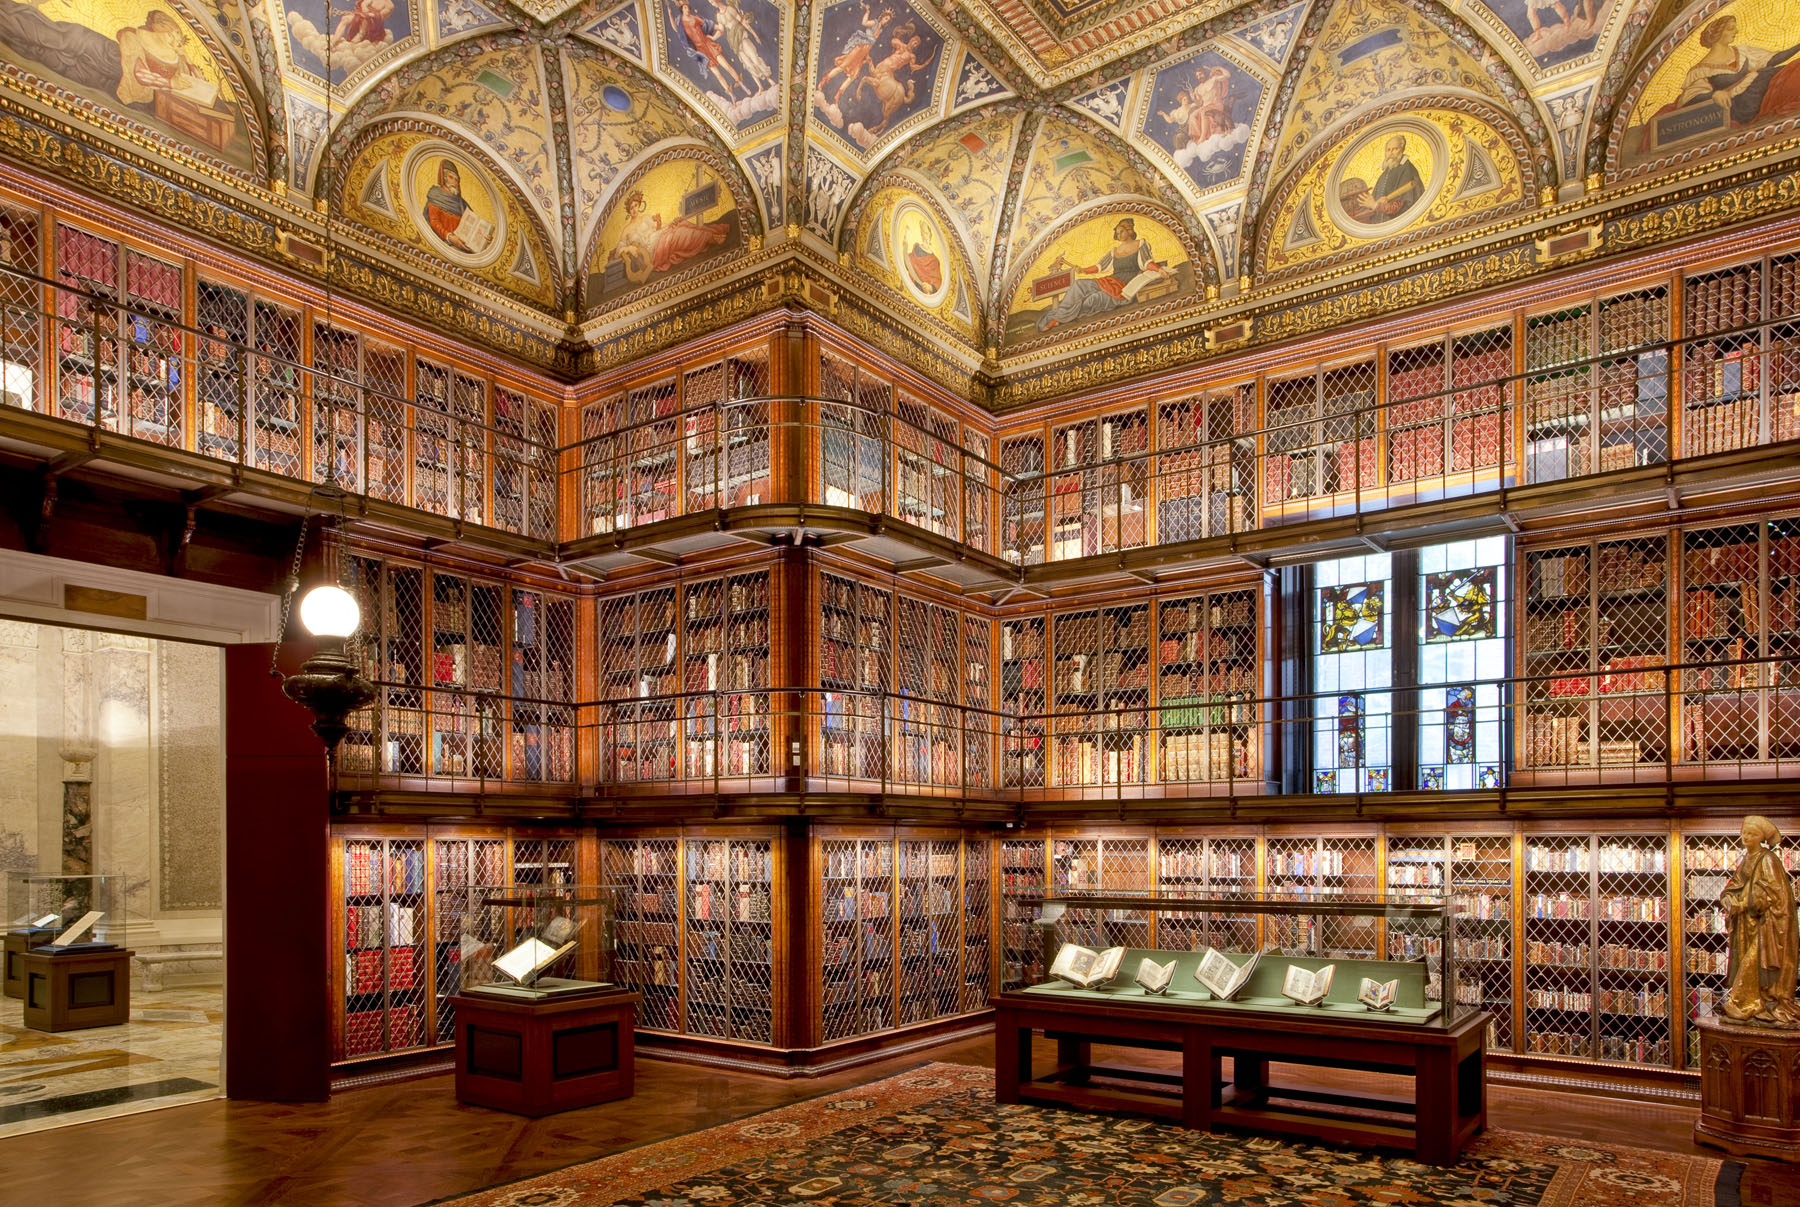 Pierpont Morgan's Library. The Morgan Library & Museum. Photography by Graham Haber. Image courtesy of The Morgan Library & Museum.